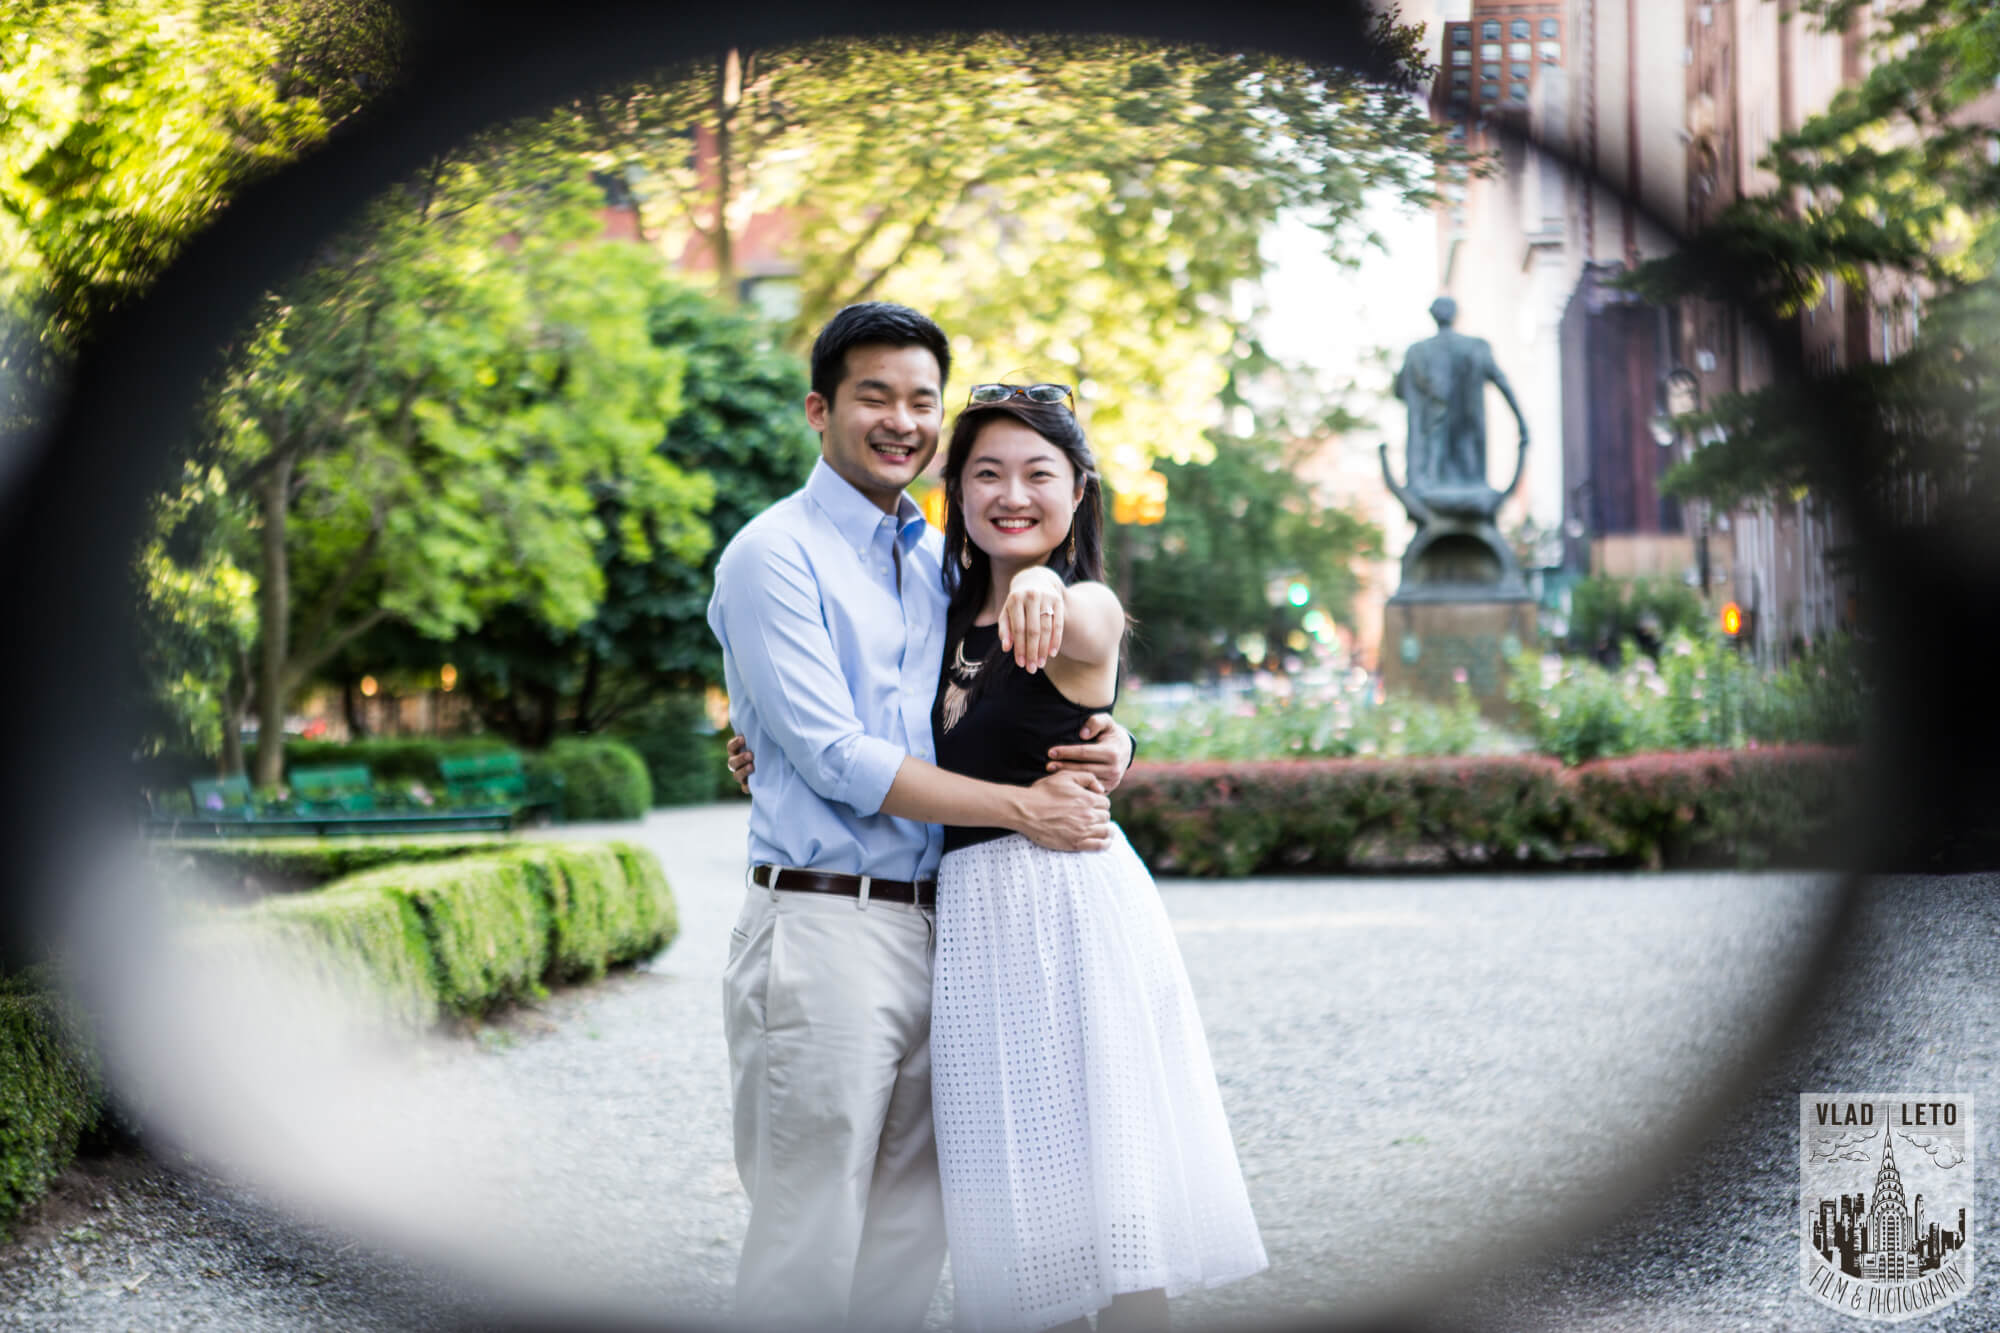 Photo 9 Gramercy Park Marriage Proposal | VladLeto